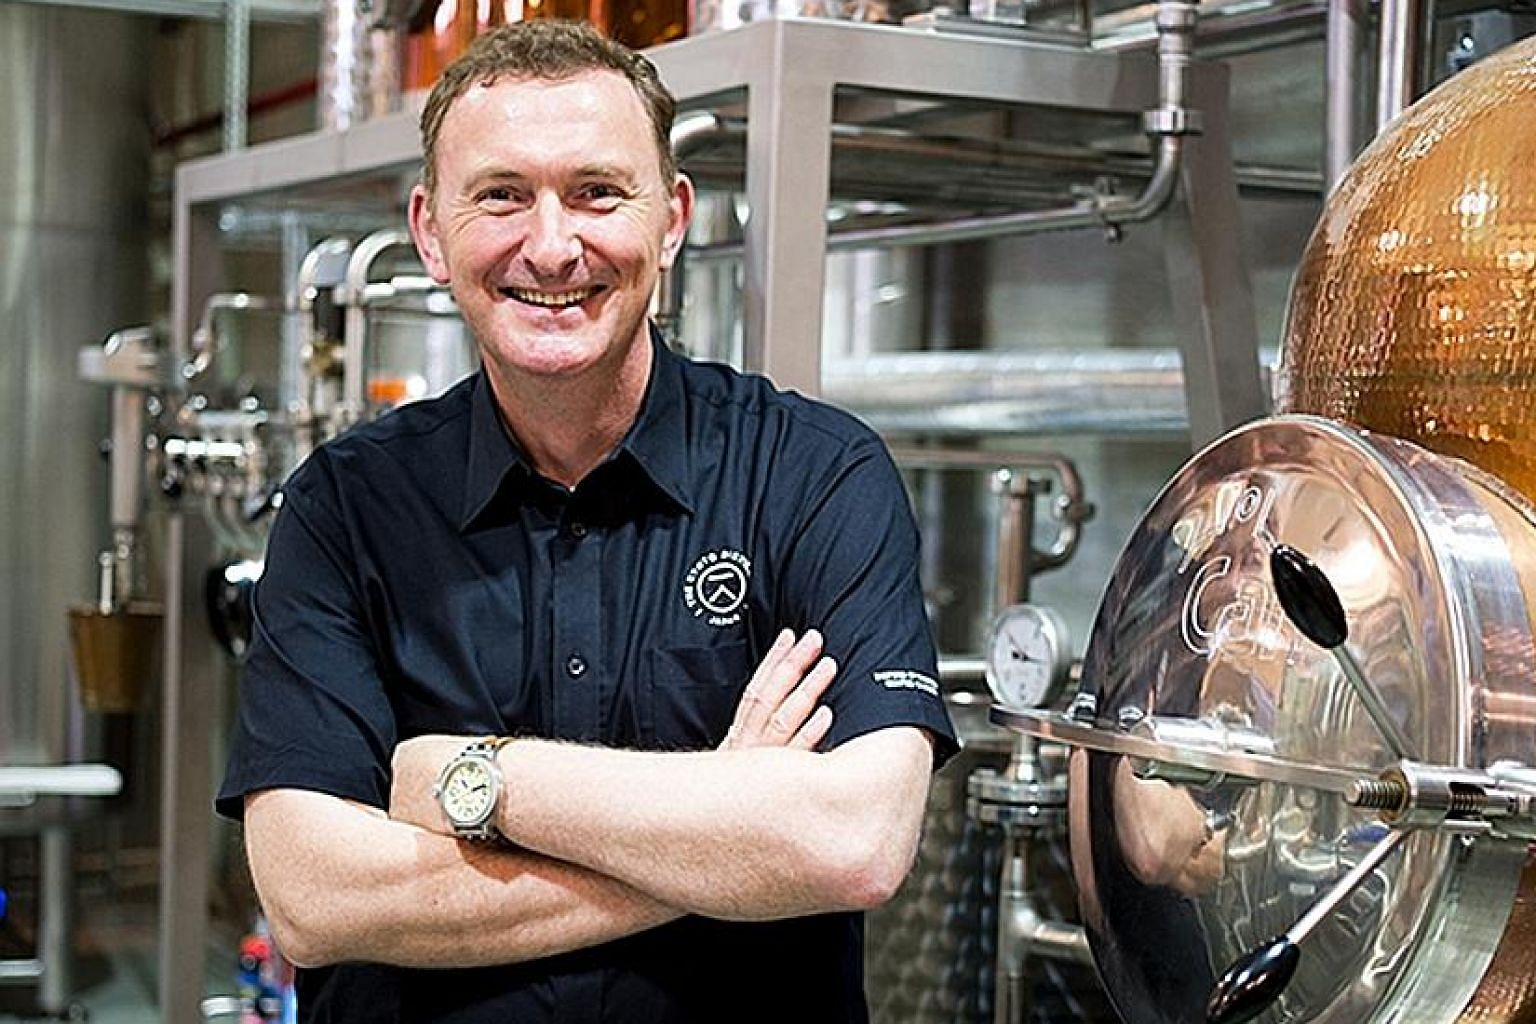 Mr David Croll from England is a co-founder of Japan's The Kyoto Distillery.